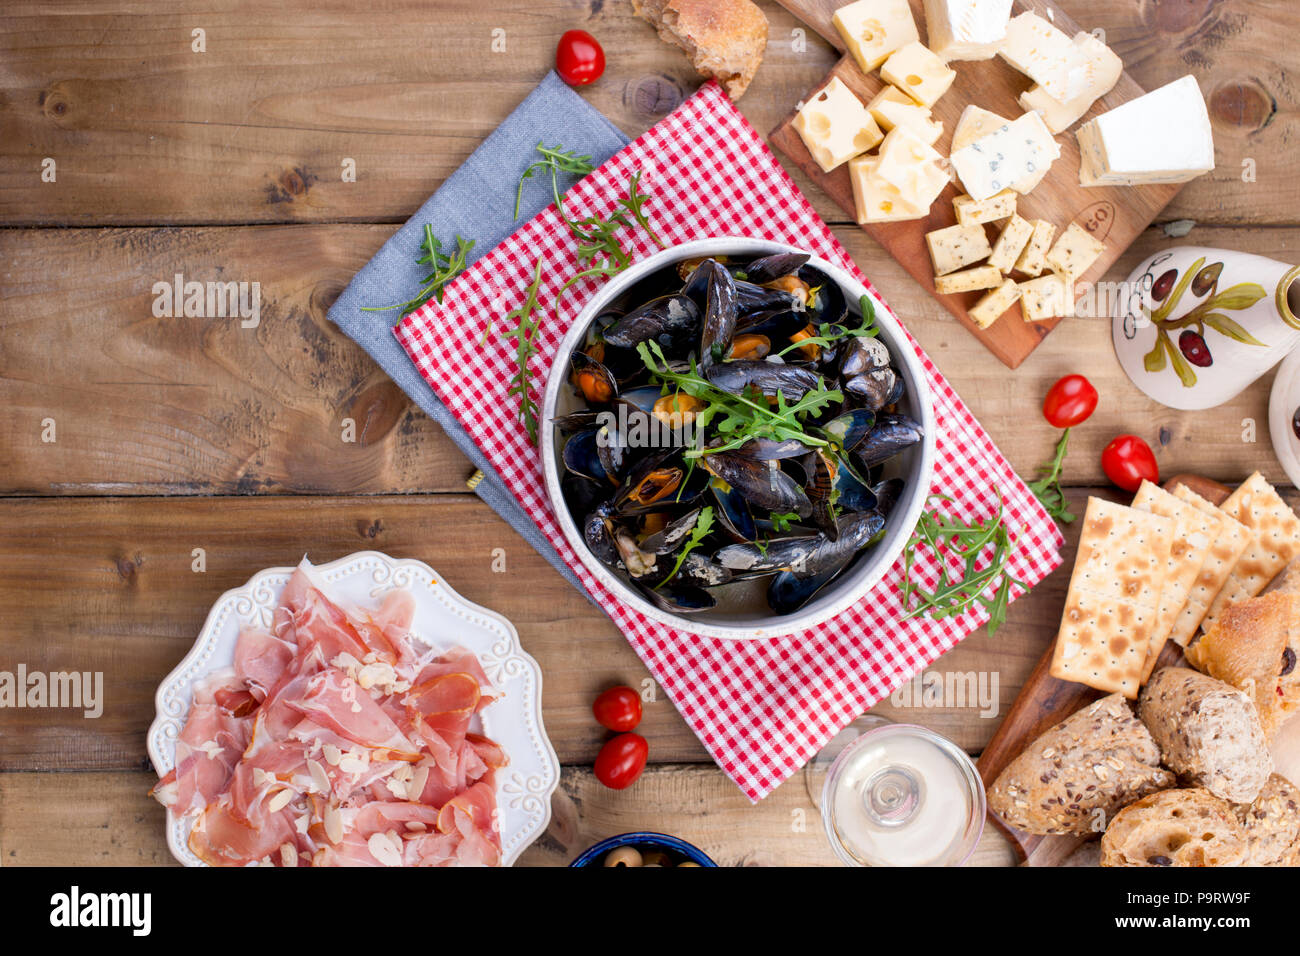 Muesli in a white ceramic bowl, on a red napkin. Cheese on a wooden board and a glass of white wine, olives, bread. Meat on a plate. On a wooden background. Free space for text or advertising - Stock Image